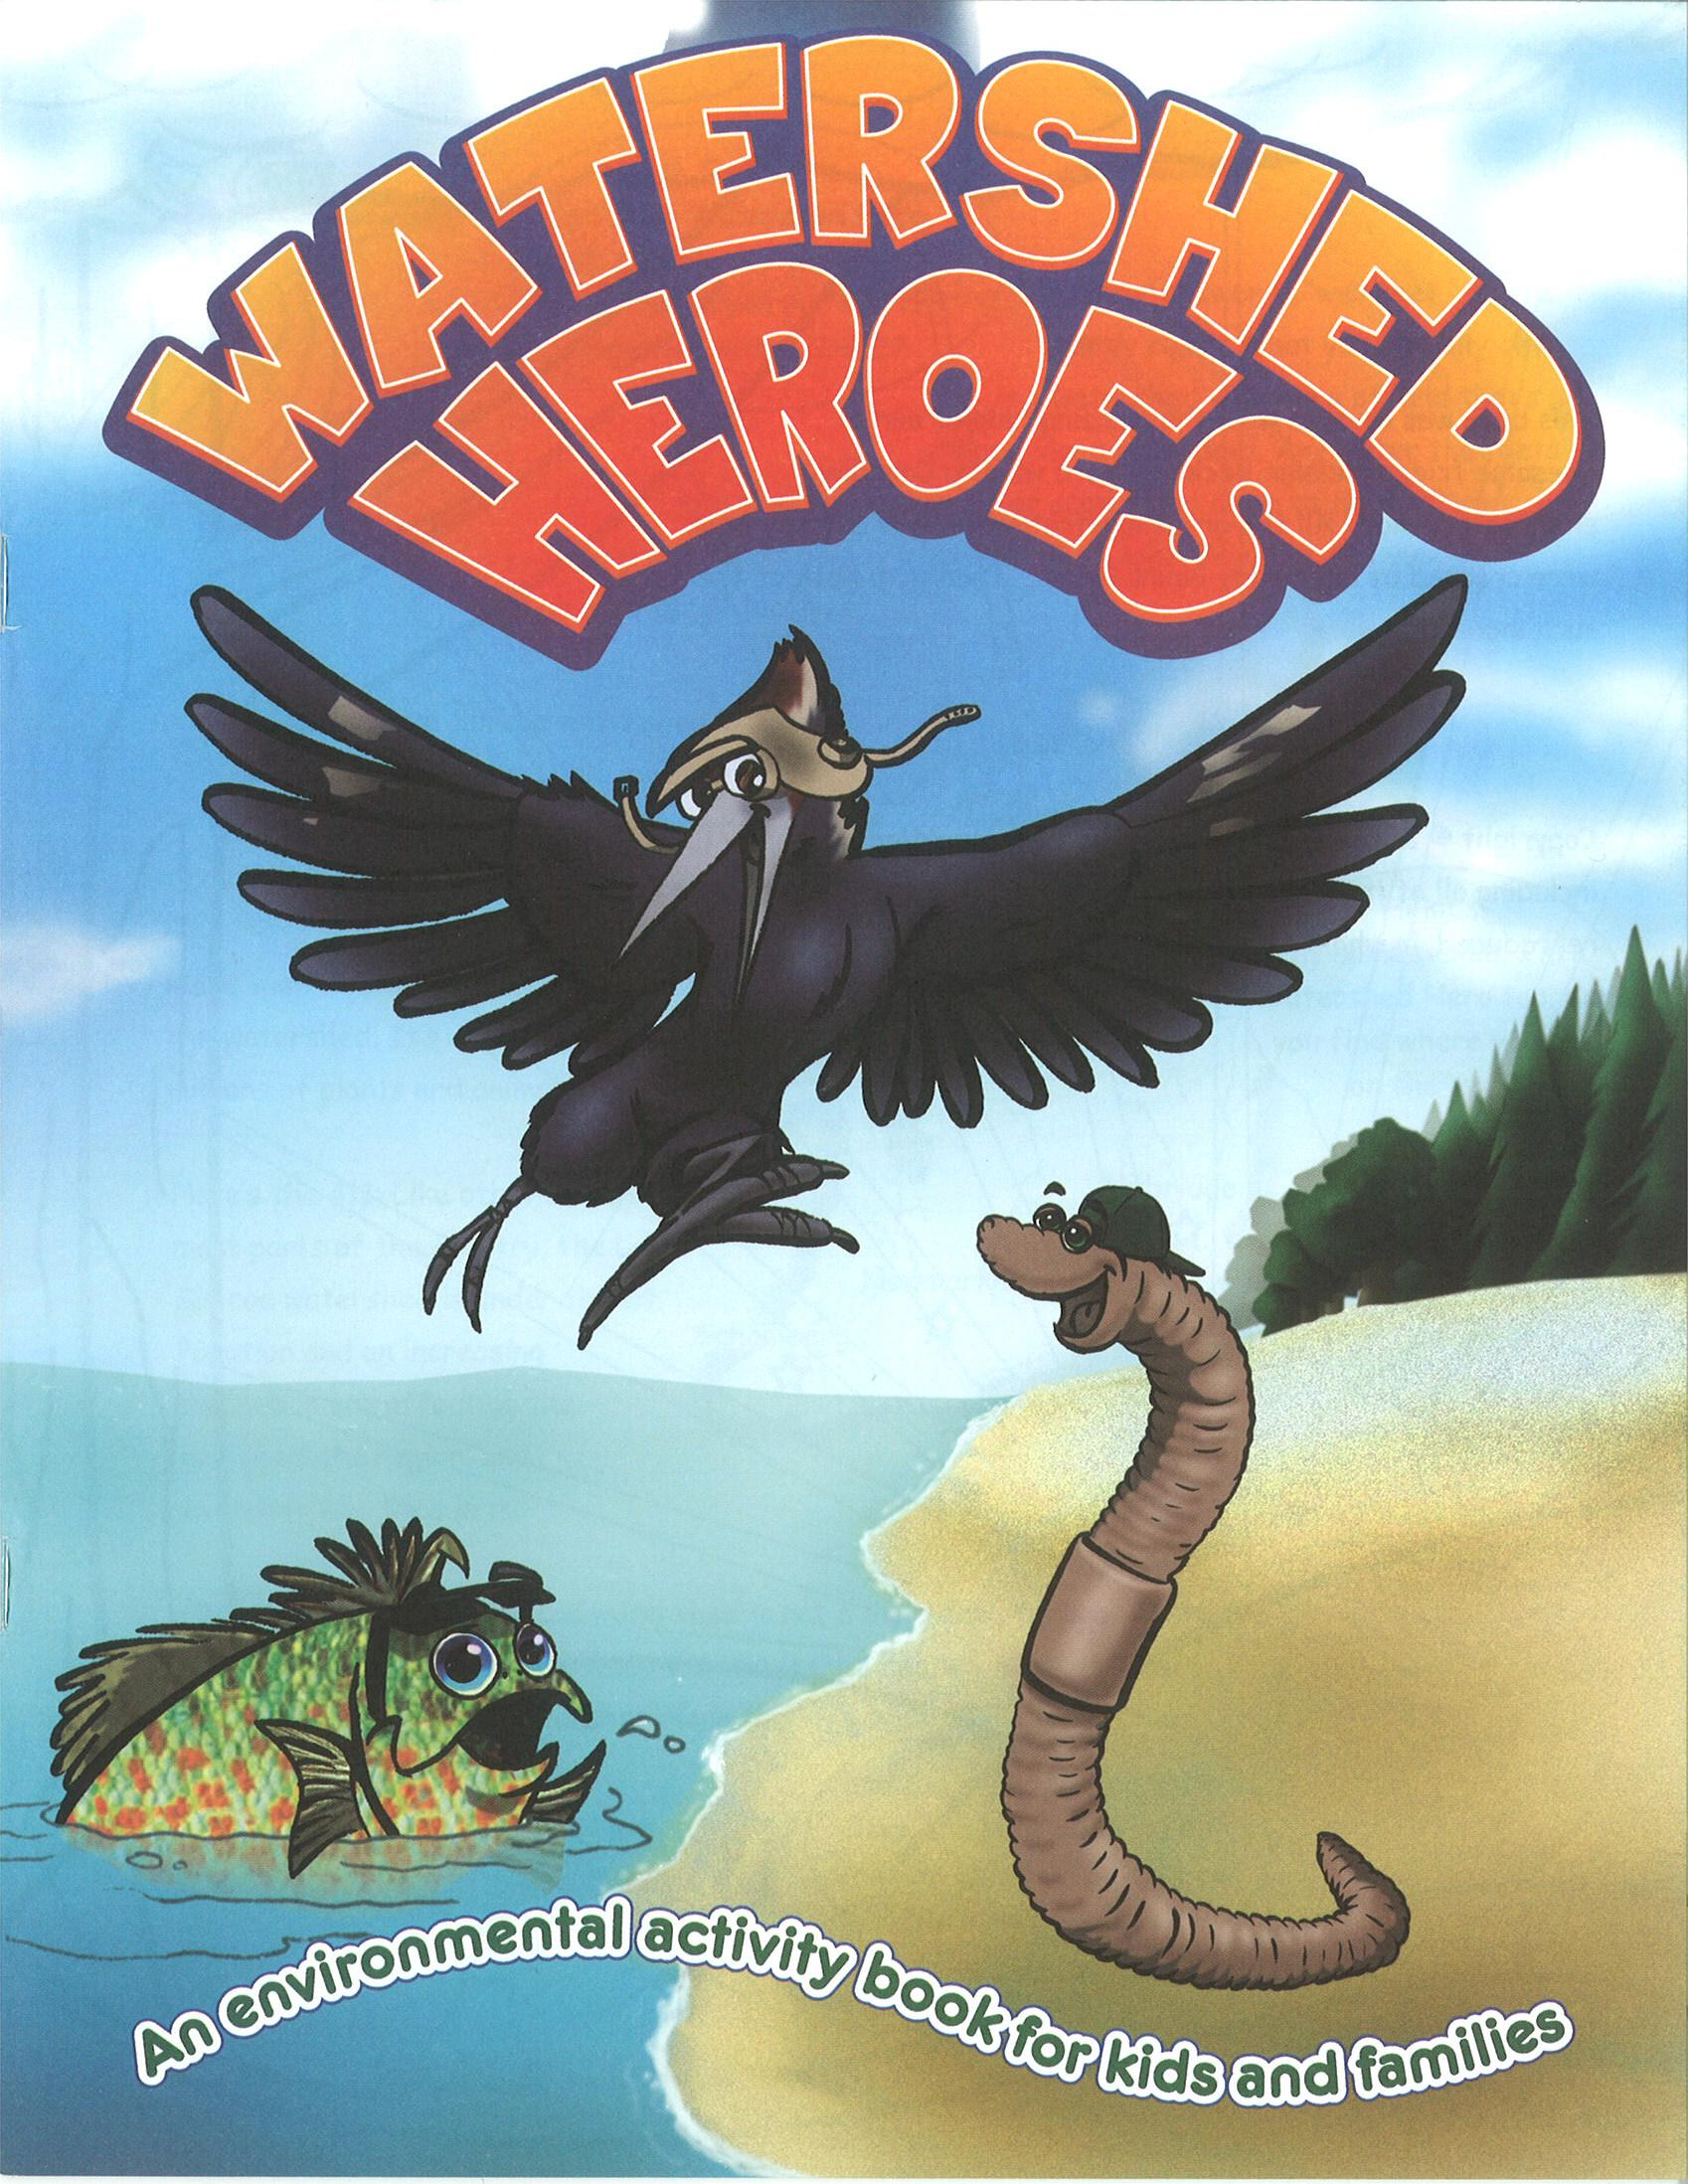 cover-page-watershed-heroes.JPG